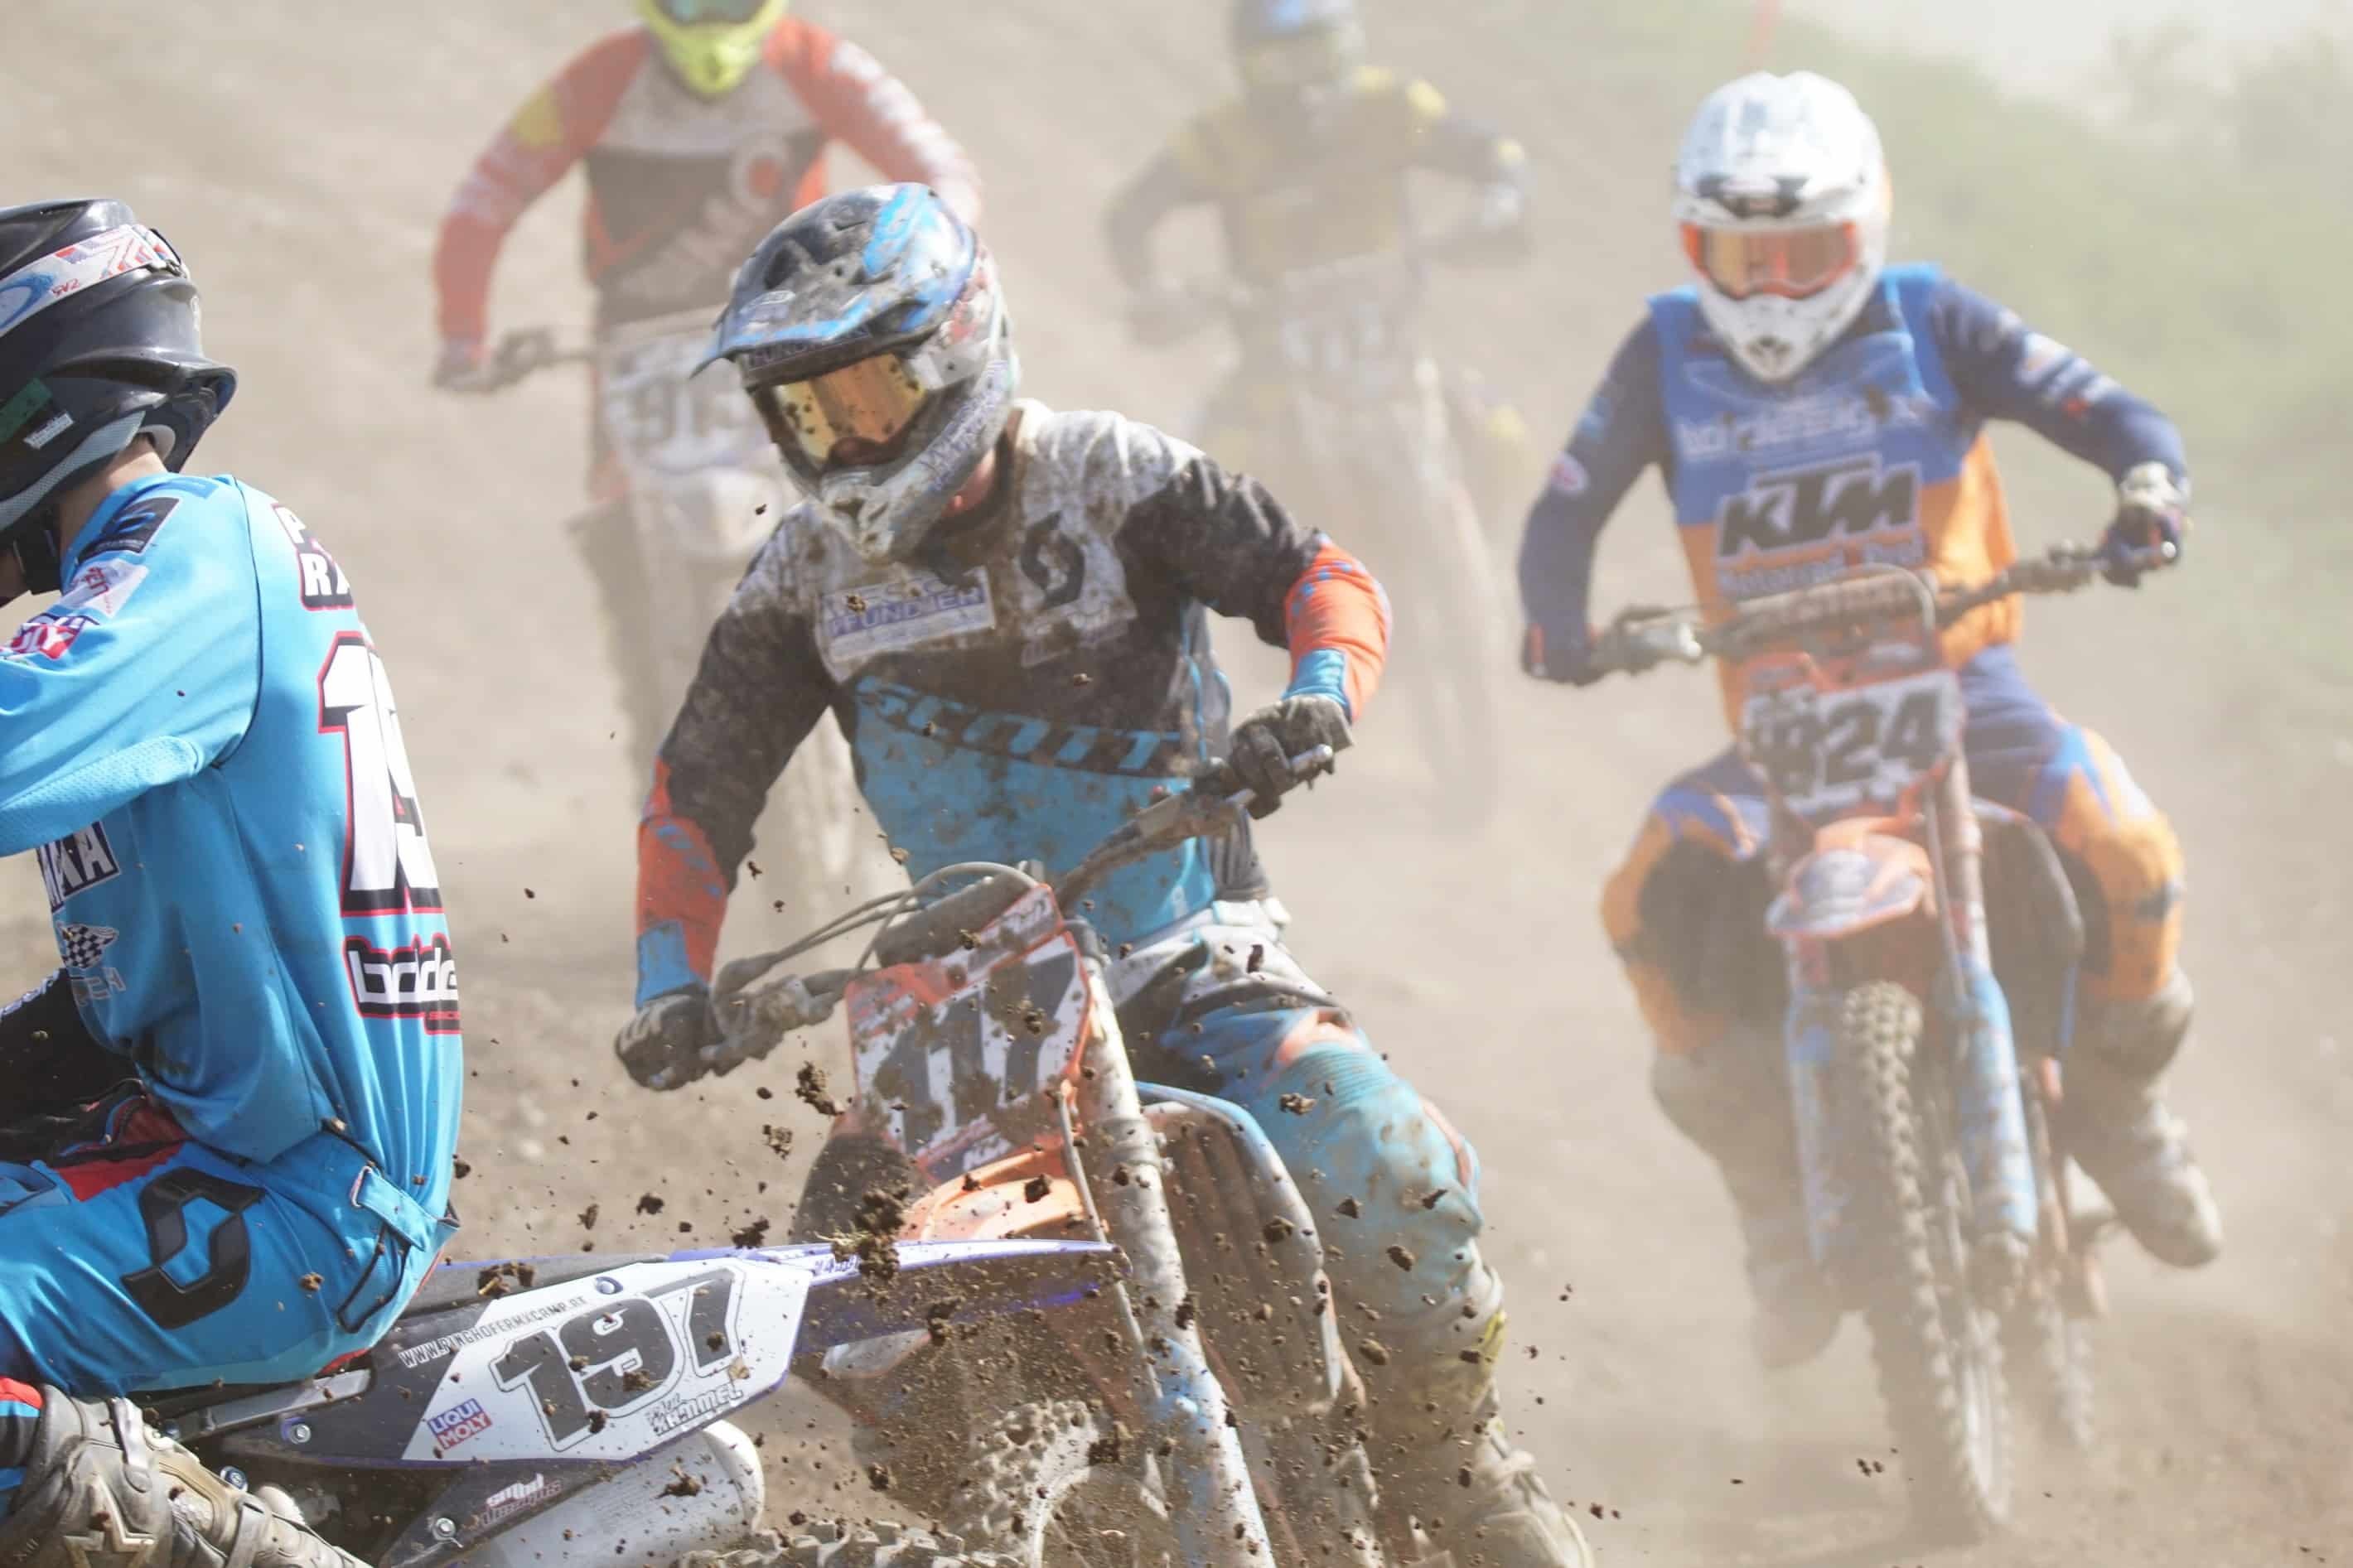 DSC 794_Moto Cross Sittendorf Teil1 am 29.04.2018